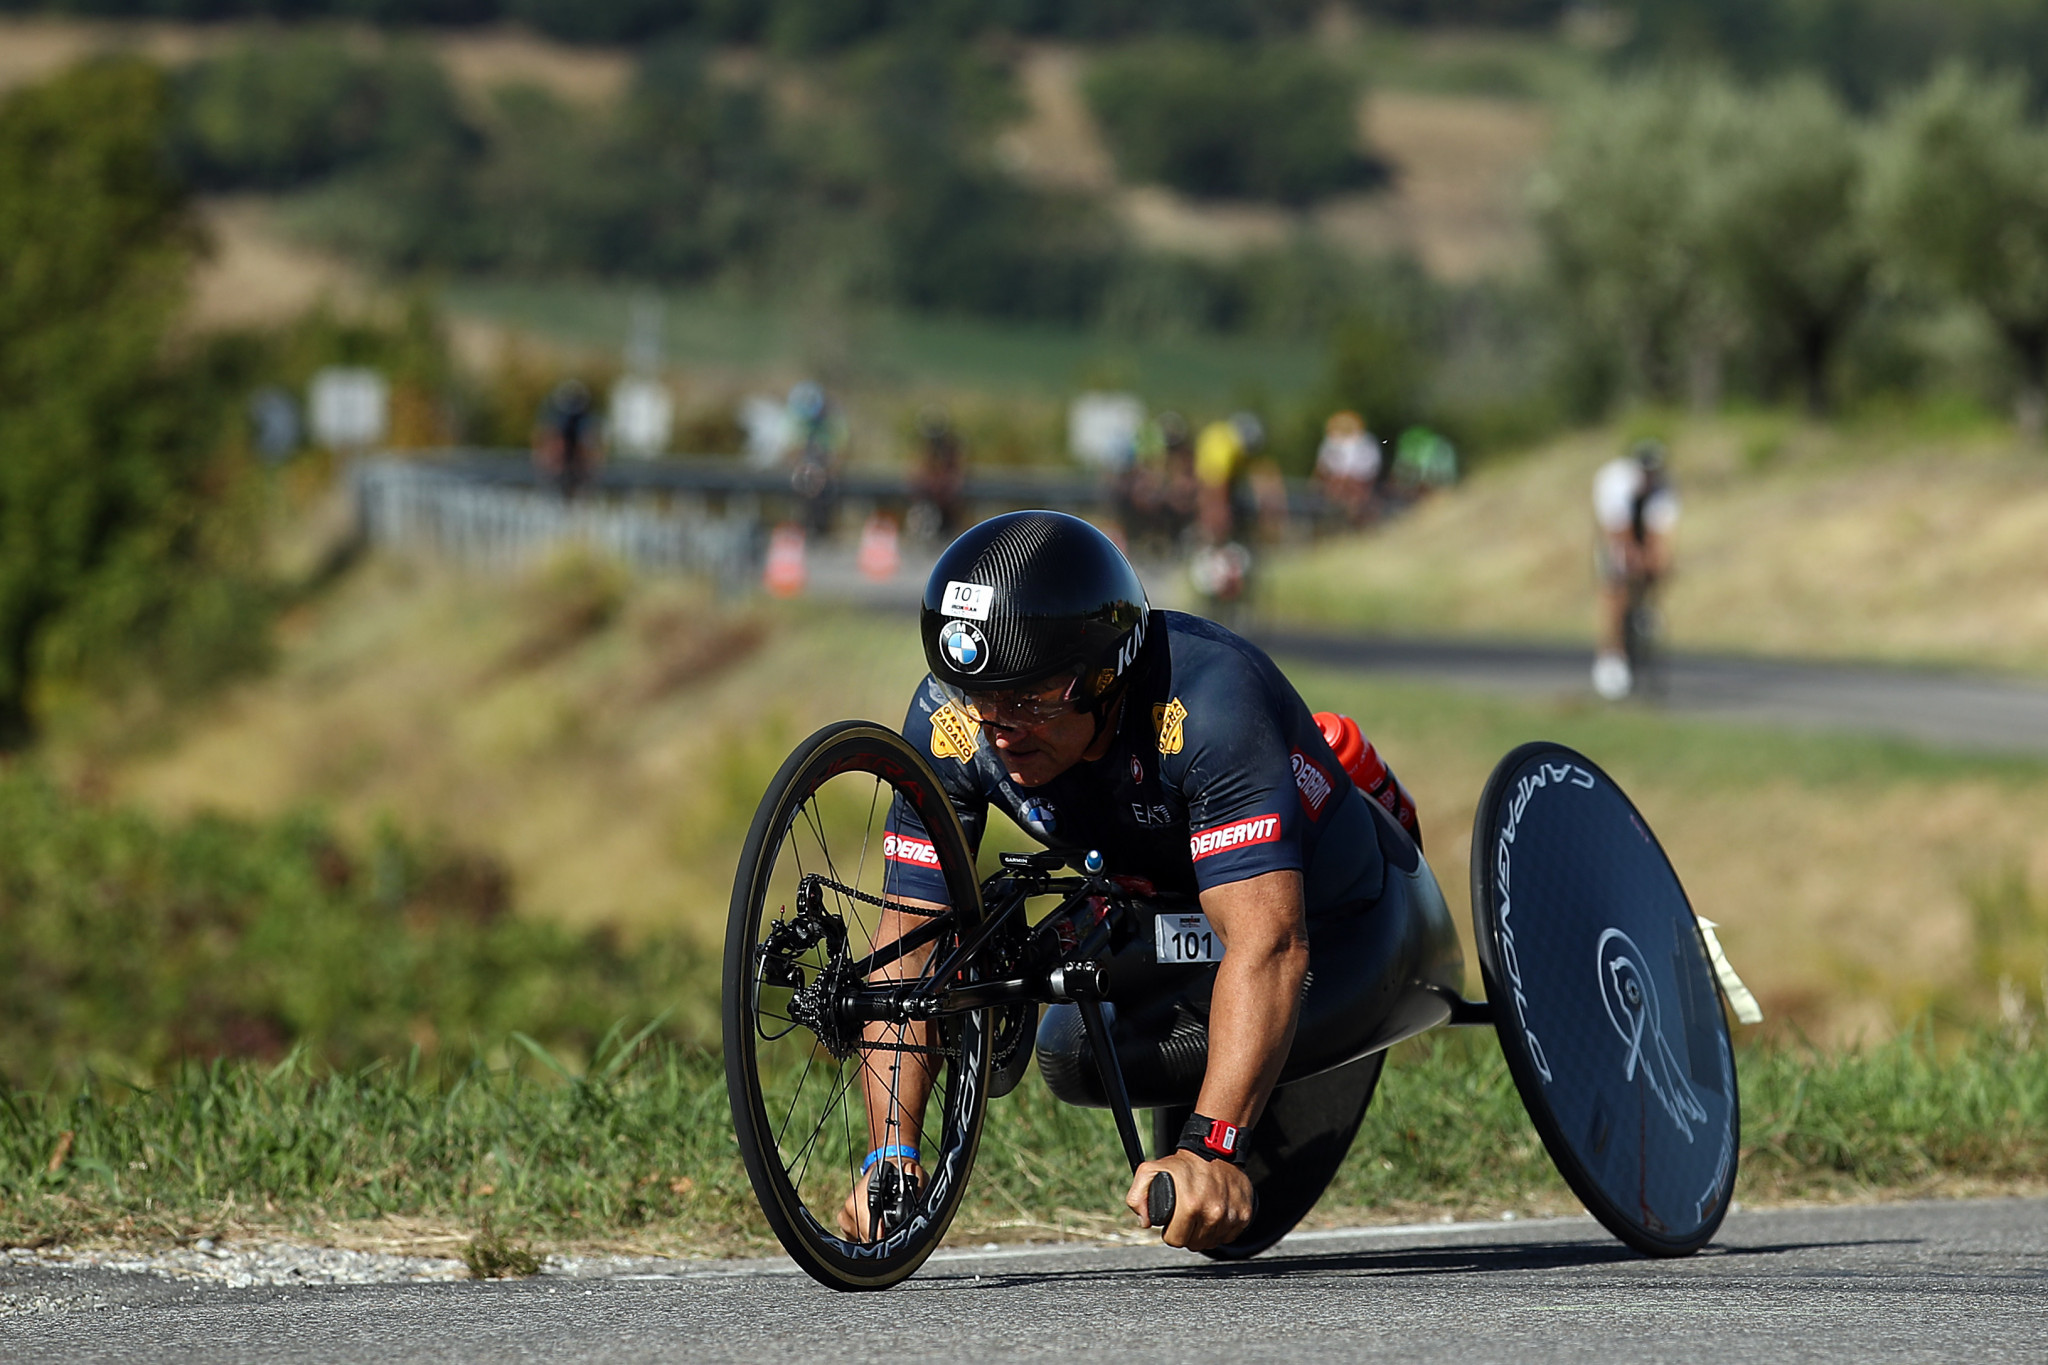 Alex Zanardi claimed two gold medals in Para cycling at both London 2012 and Rio 2016 ©Getty Images